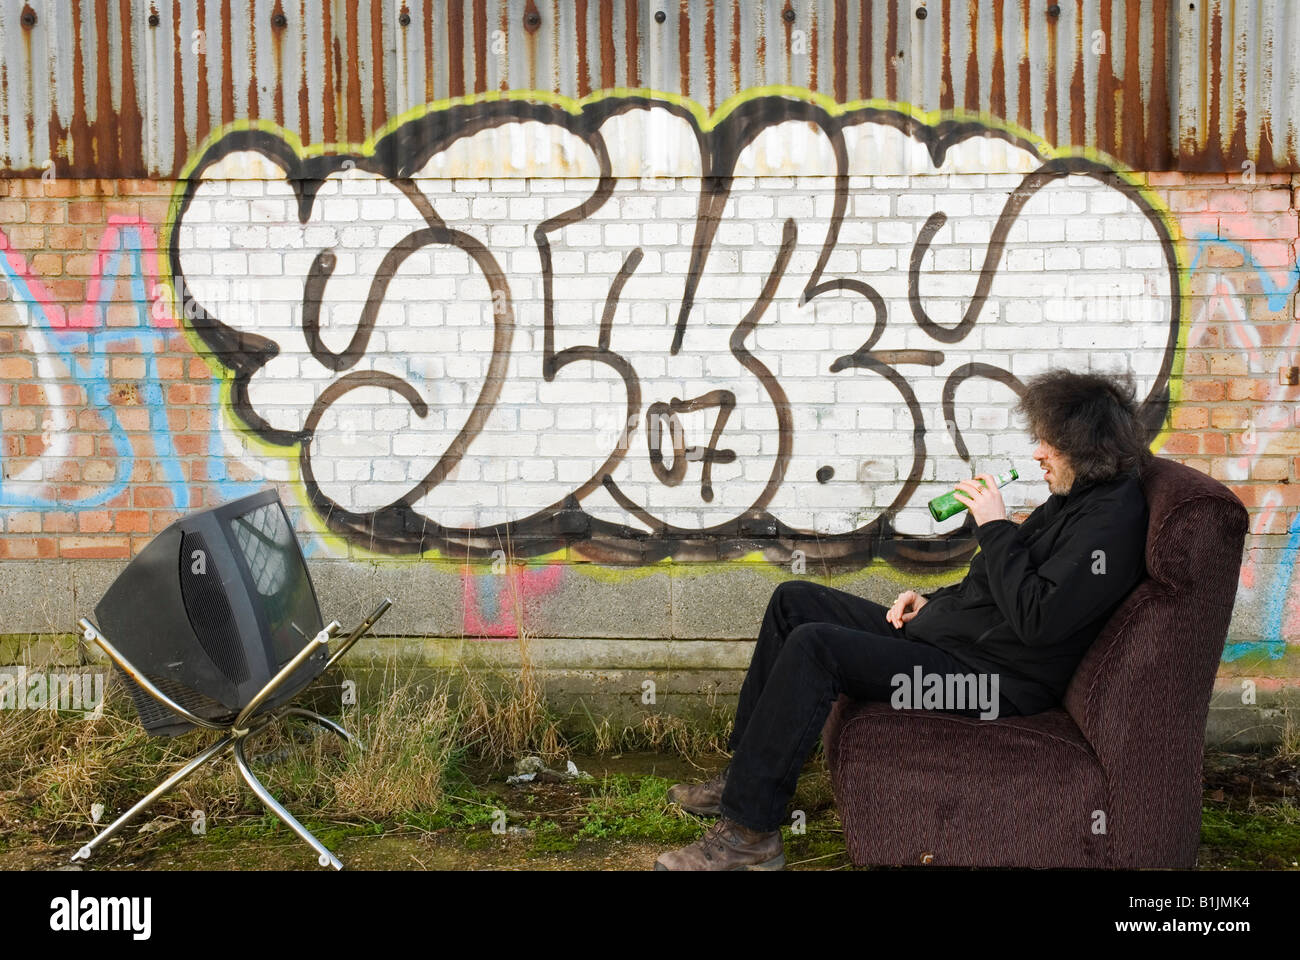 Watching the box in the great outdoors. - Stock Image